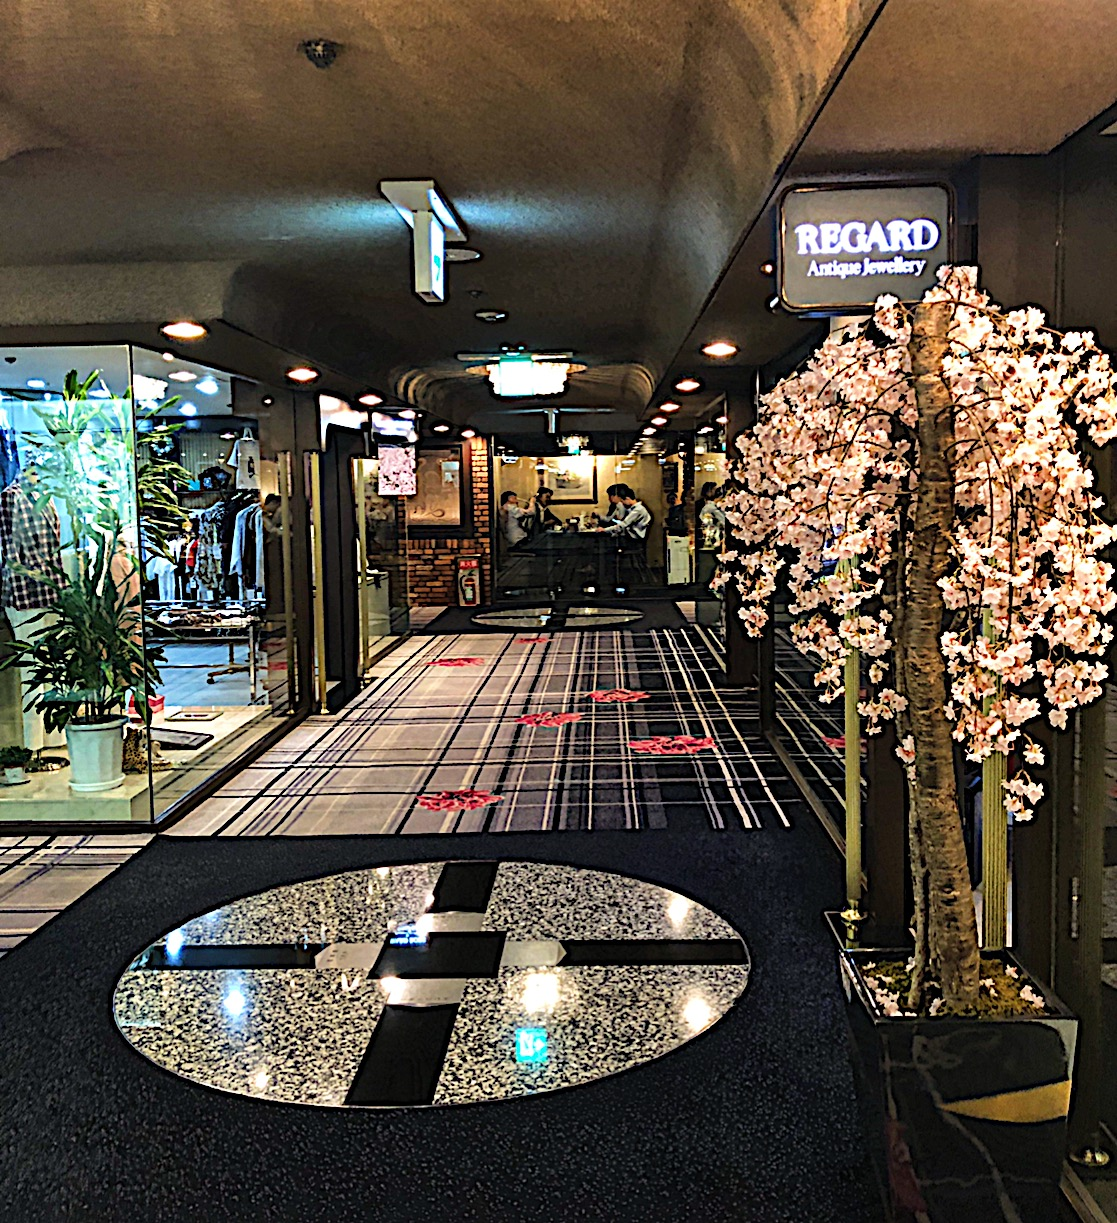 Shopping Arcade in the Hotel New Otani in Tokyo